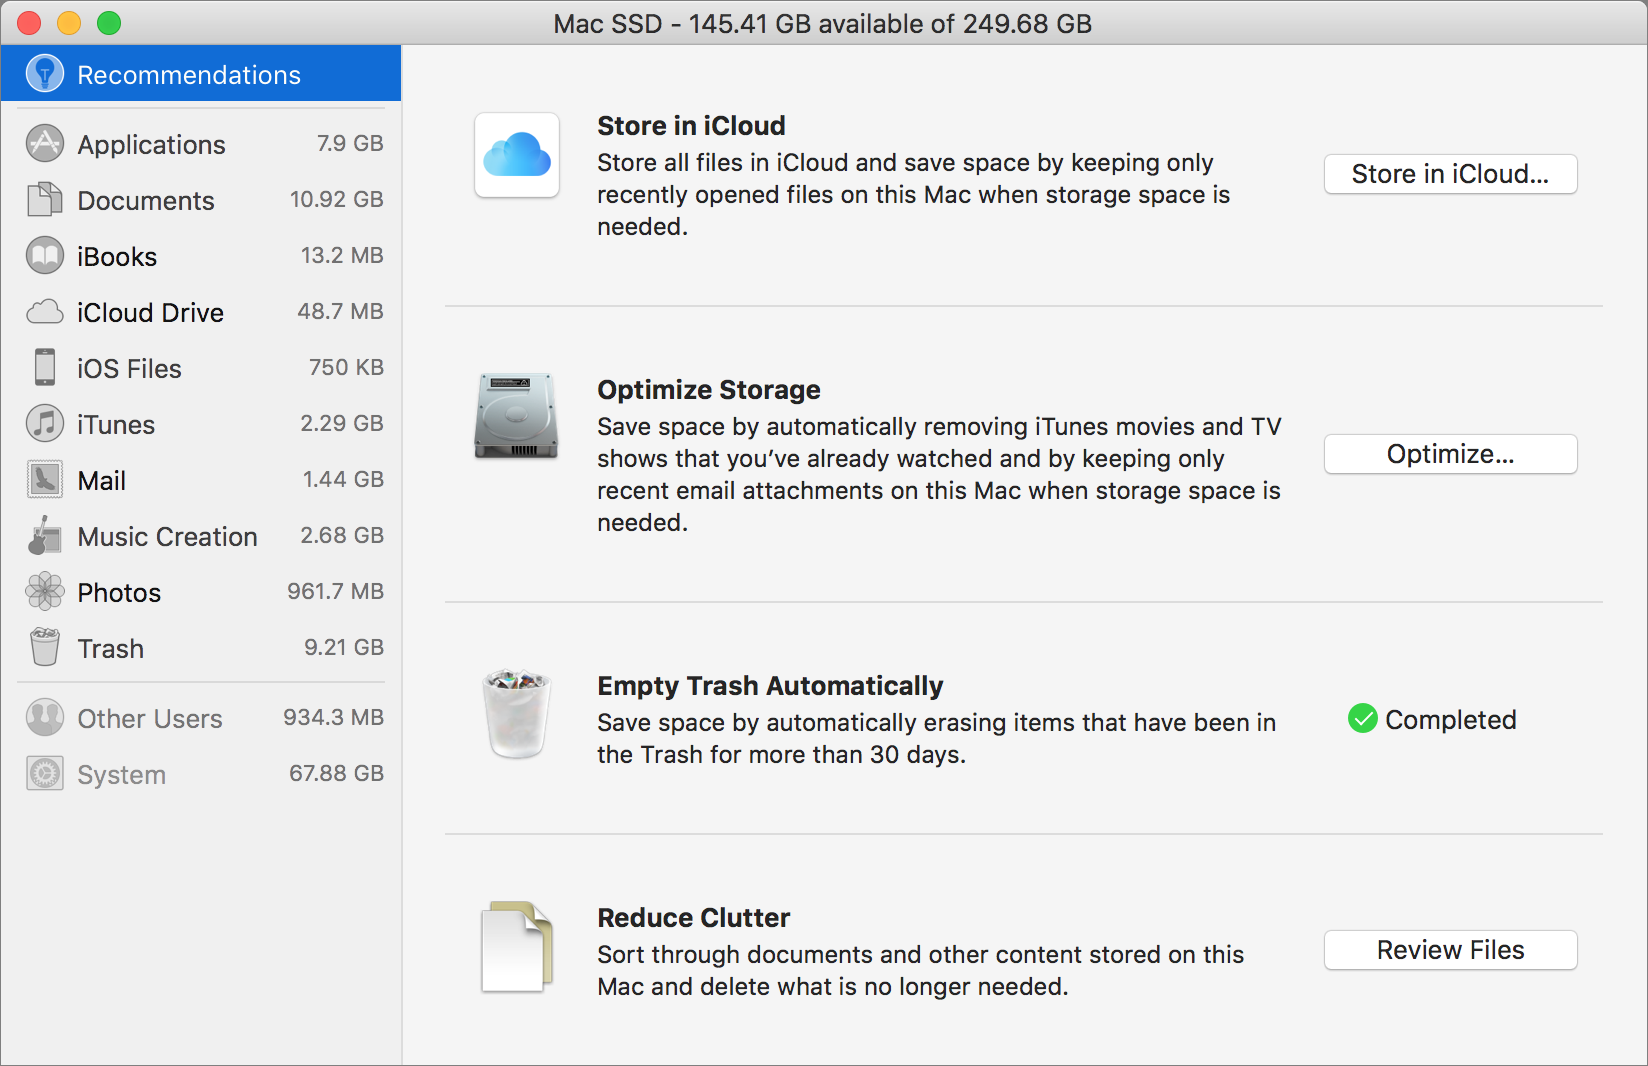 Optimize the storage on your Mac